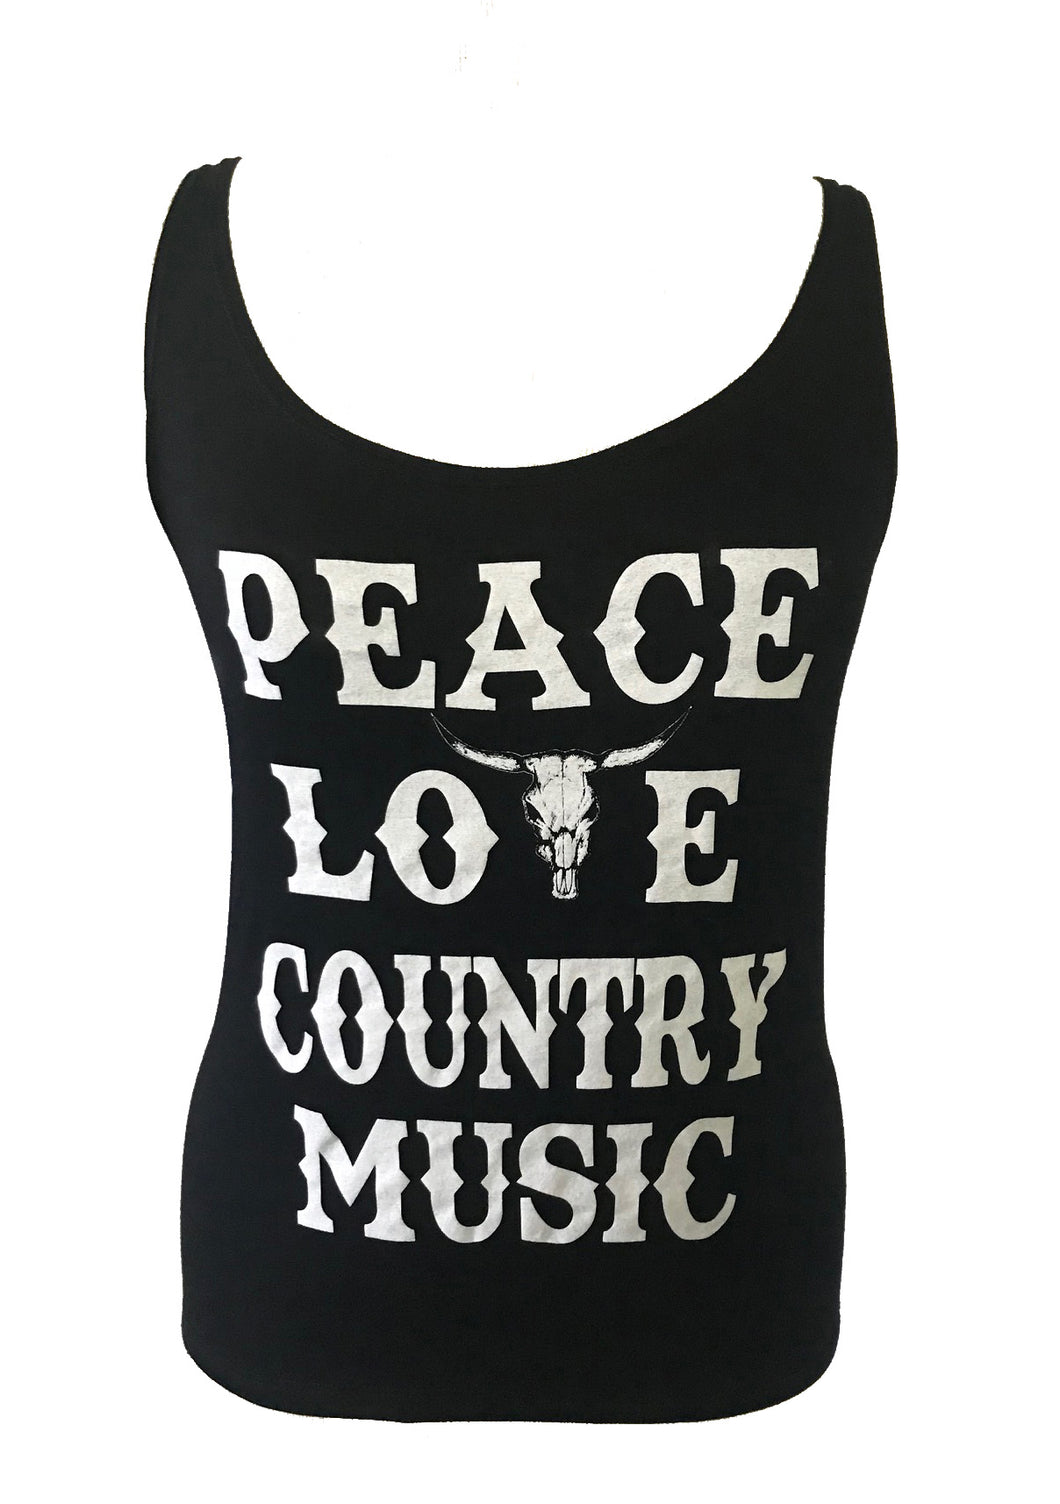 PEACE LOVE COUNTRY MUSIC TANK TOP - Trailsclothing.com